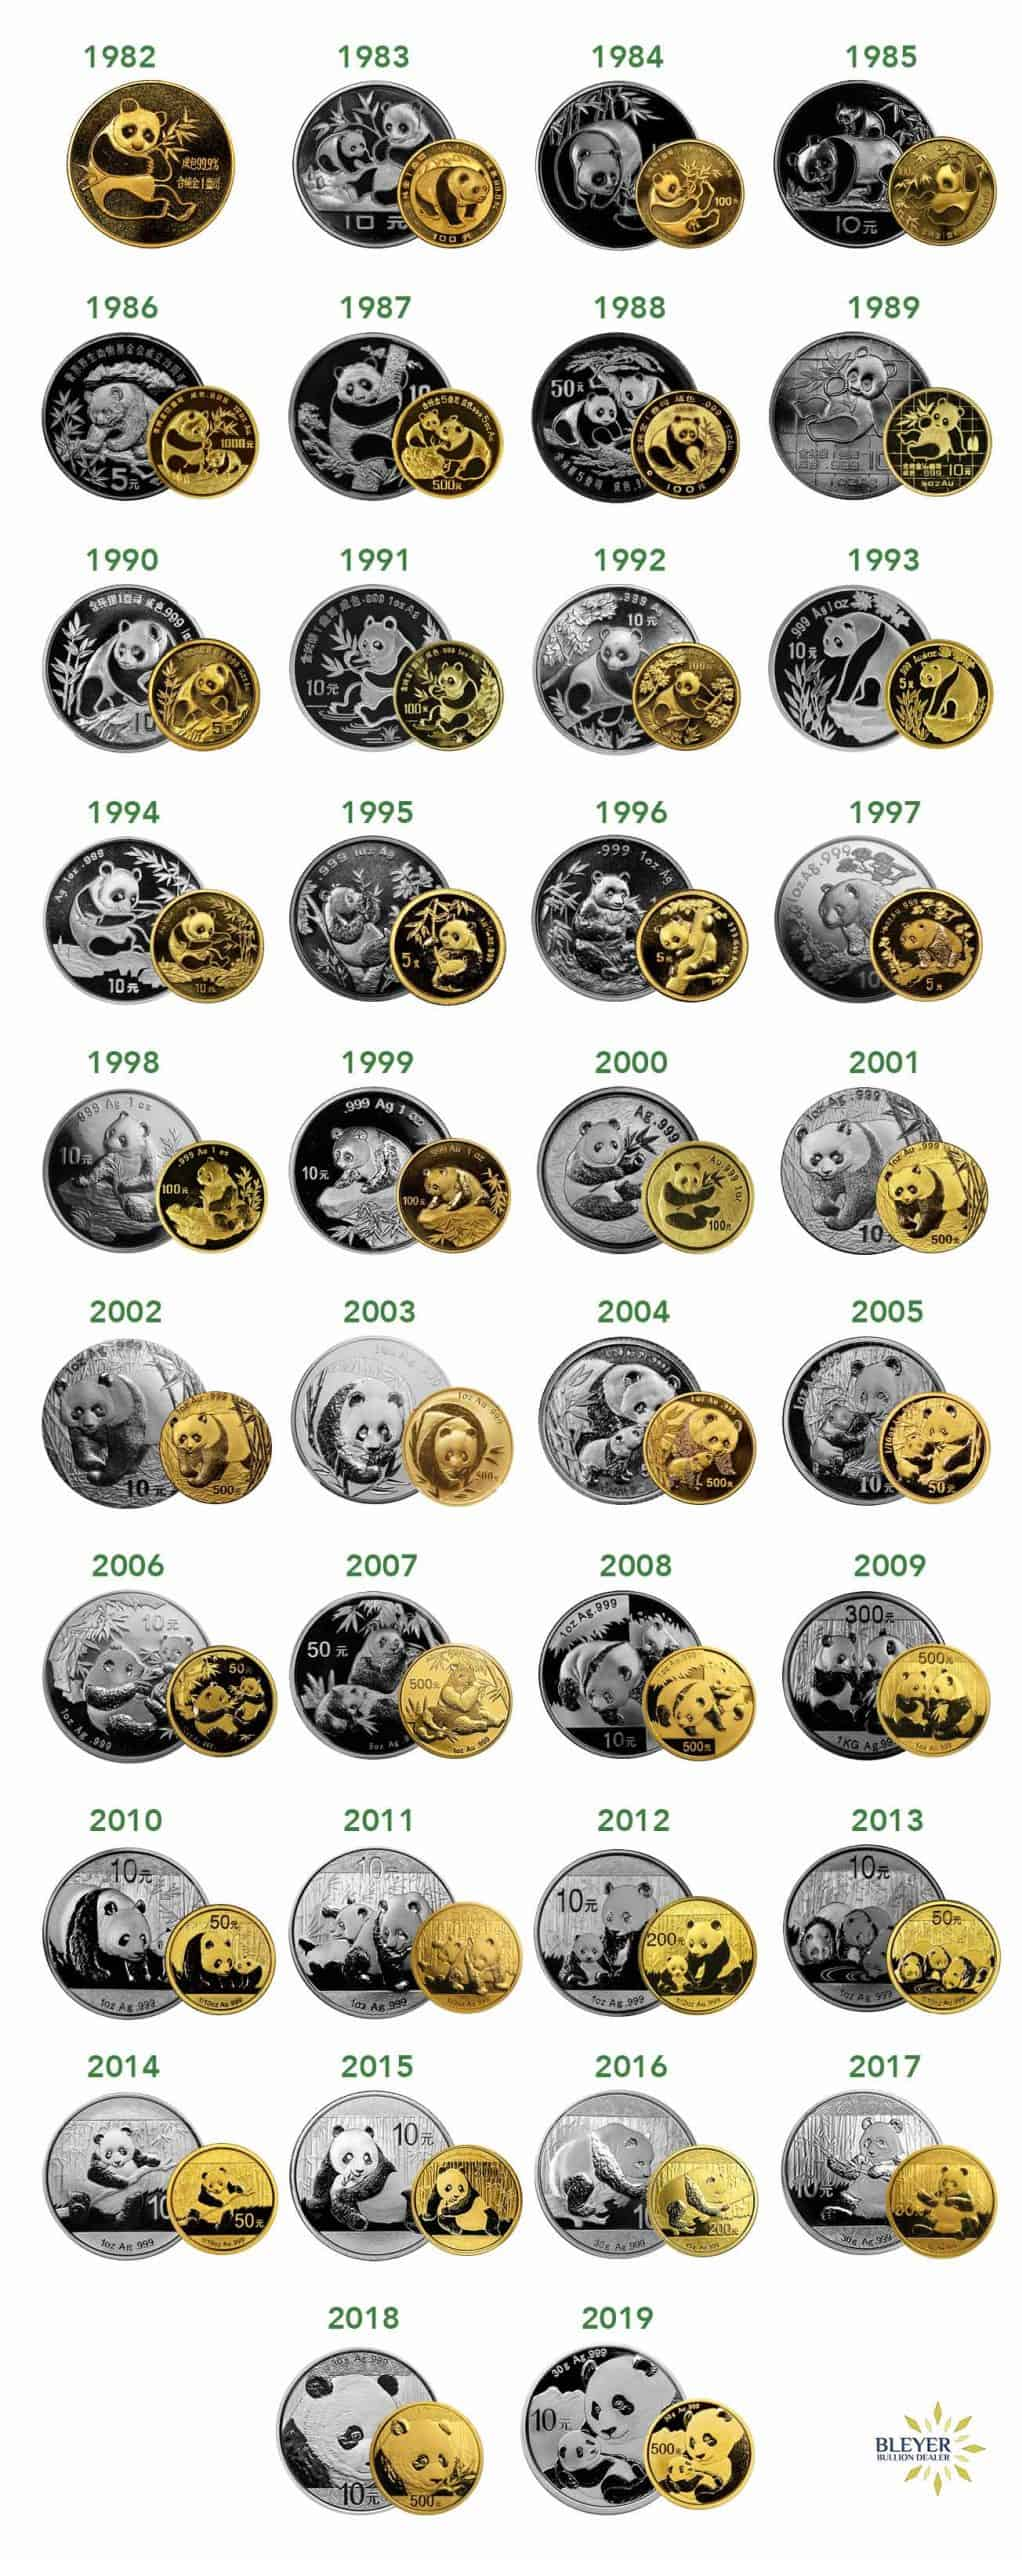 Silver and Gold Panda Coin Designs from 1983-2019